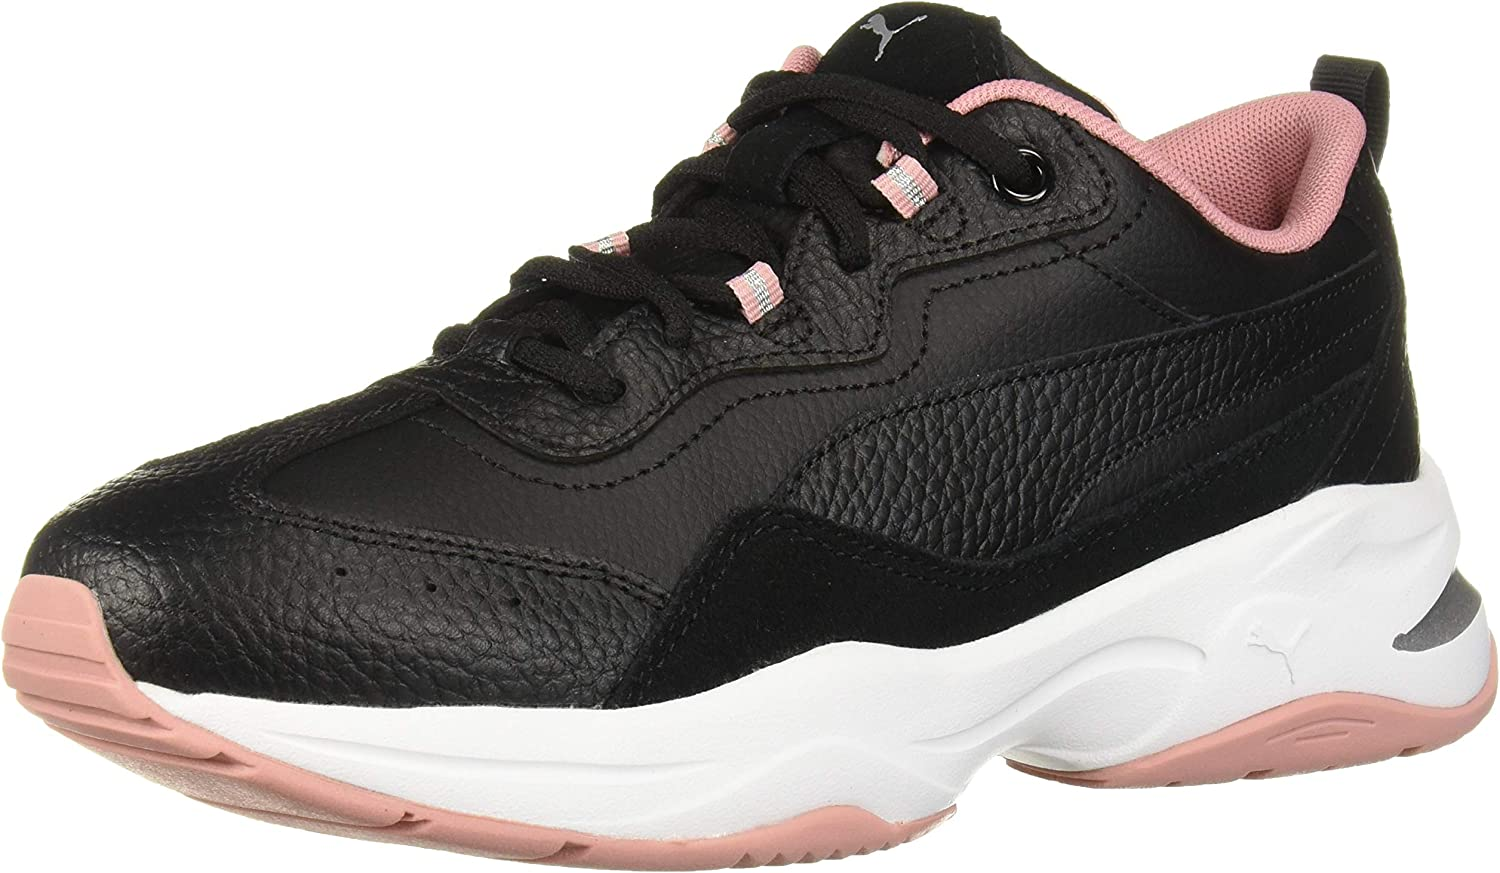 New product!! PUMA Outlet sale feature Women's Sneaker Cilia